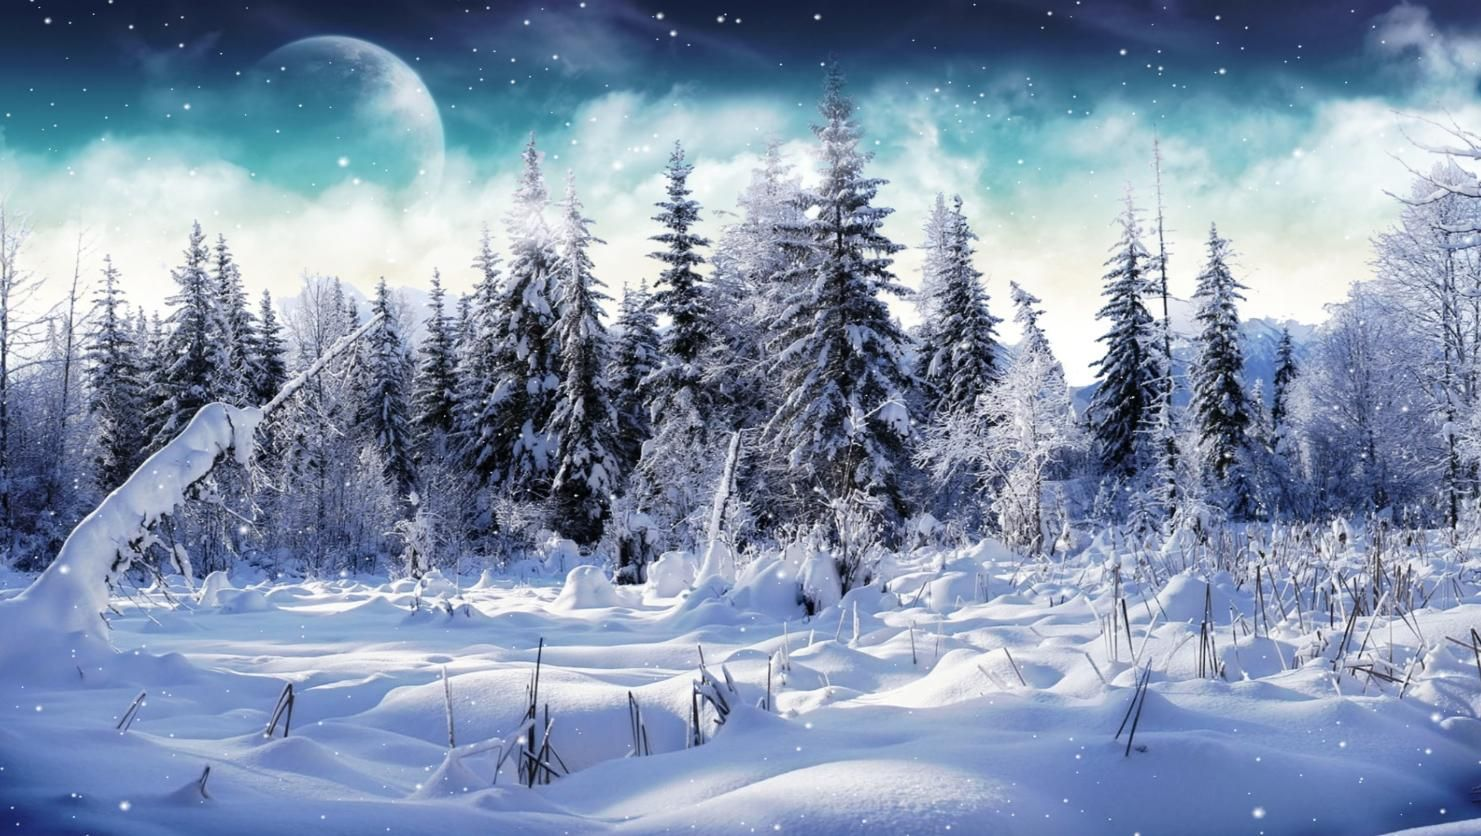 Free Microsoft Screensavers Winter Scene Download Cold Winter Animated Wallpaper Desktopanimated Com Winter Scenery Winter Landscape Winter Pictures